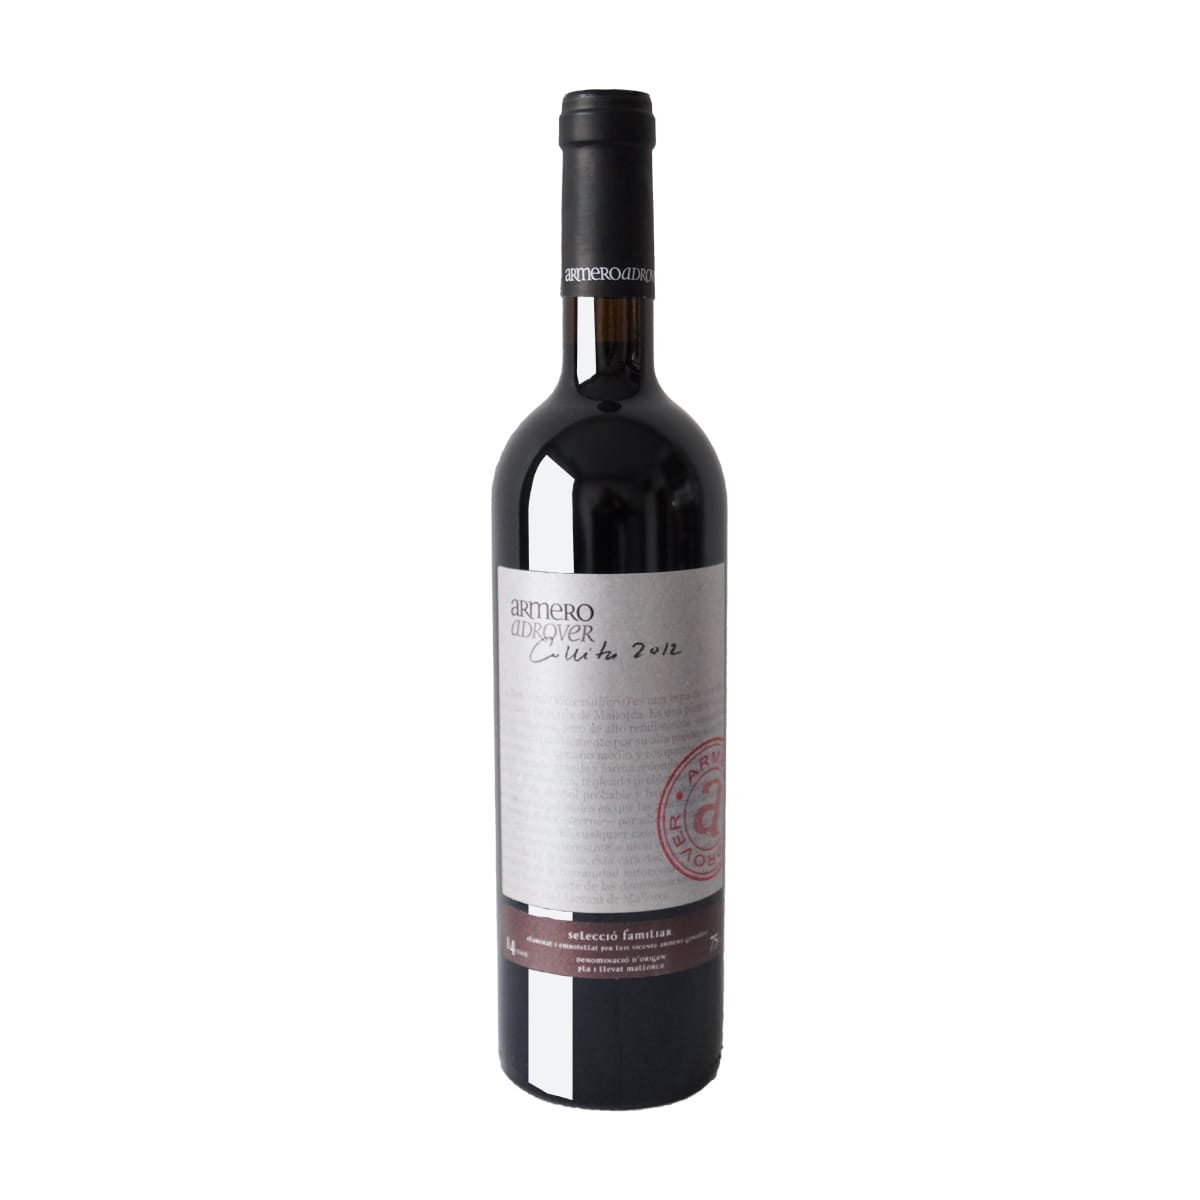 Reserva Familiar 2012